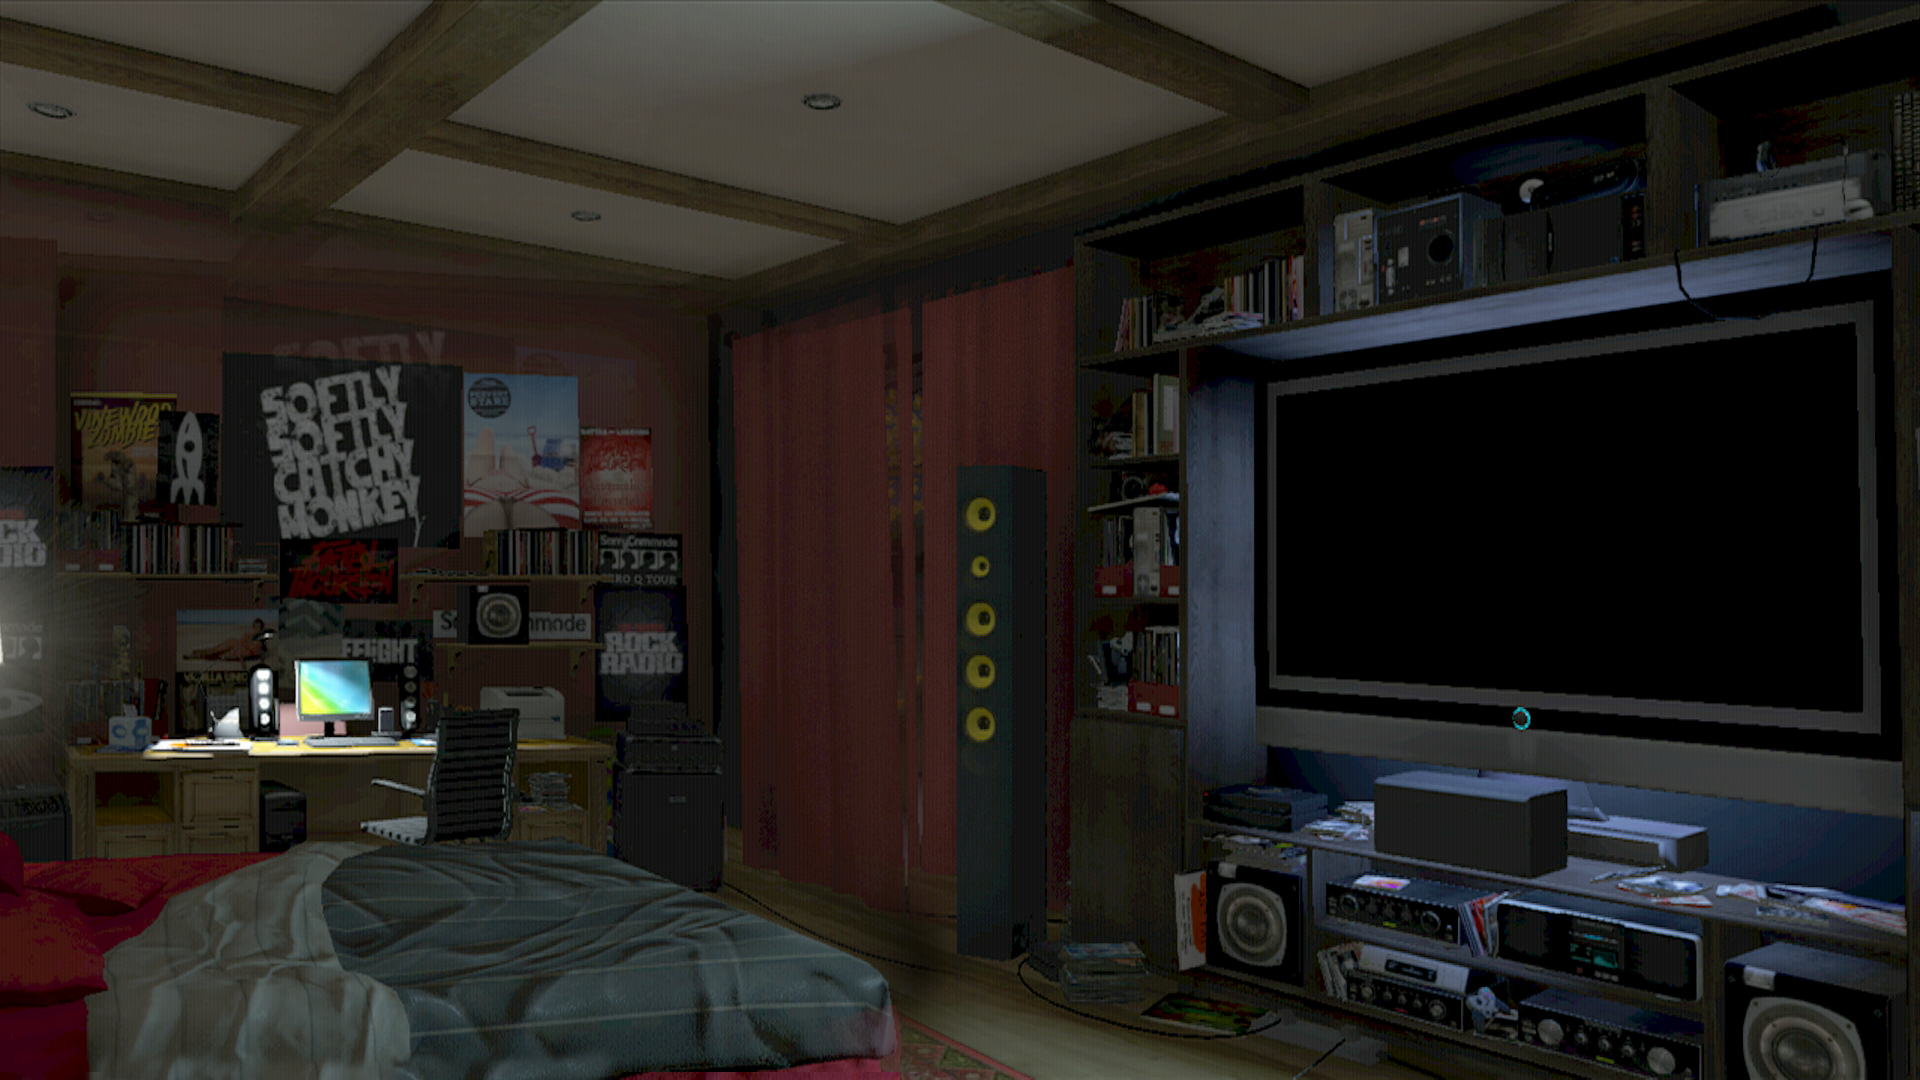 gta 5 bedroom wallpaper bedroom review design